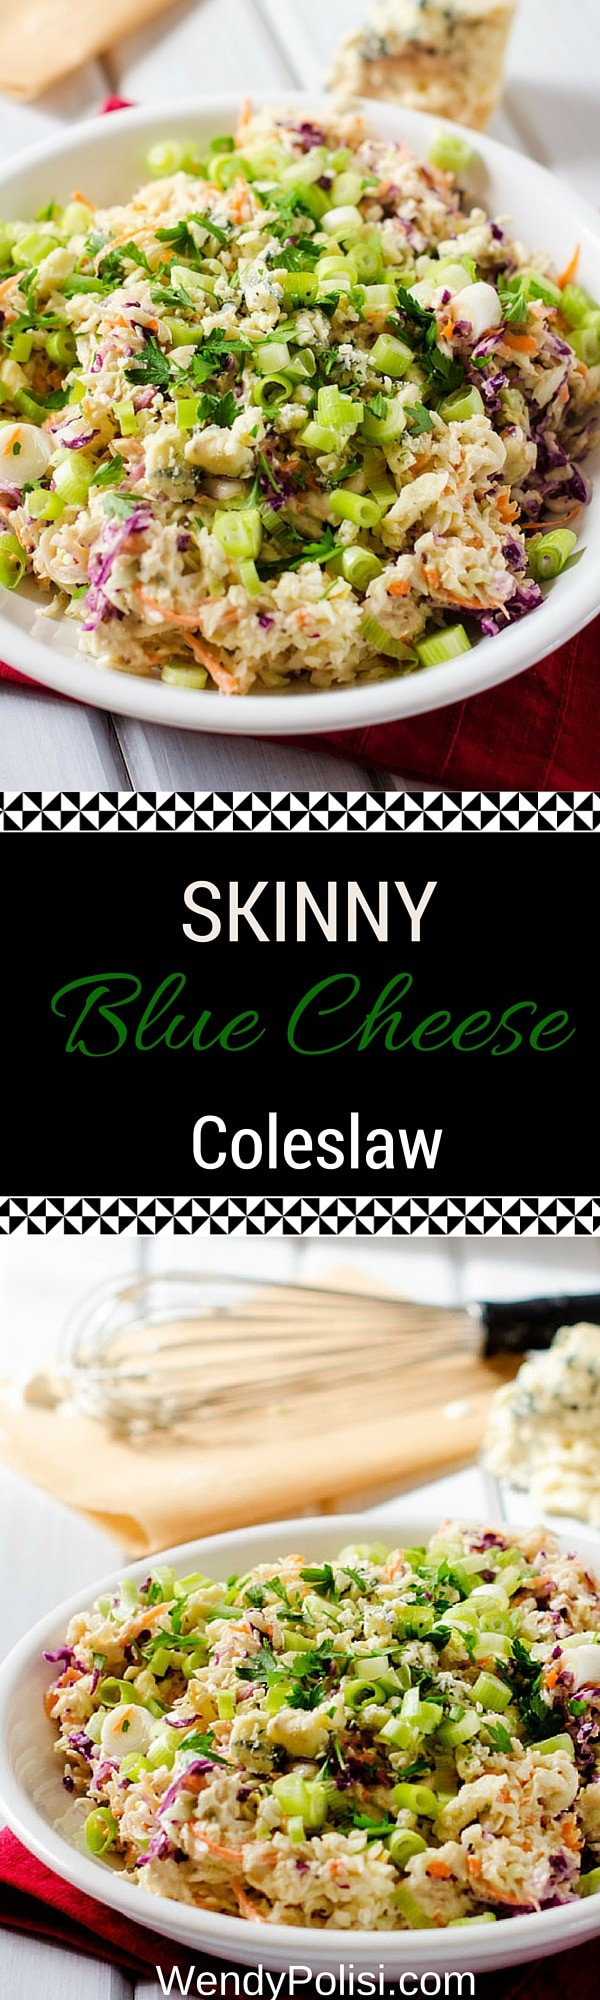 Skinny Blue Cheese Coleslaw - A healthier twist on a classic! So good! - WendyPolisi.com